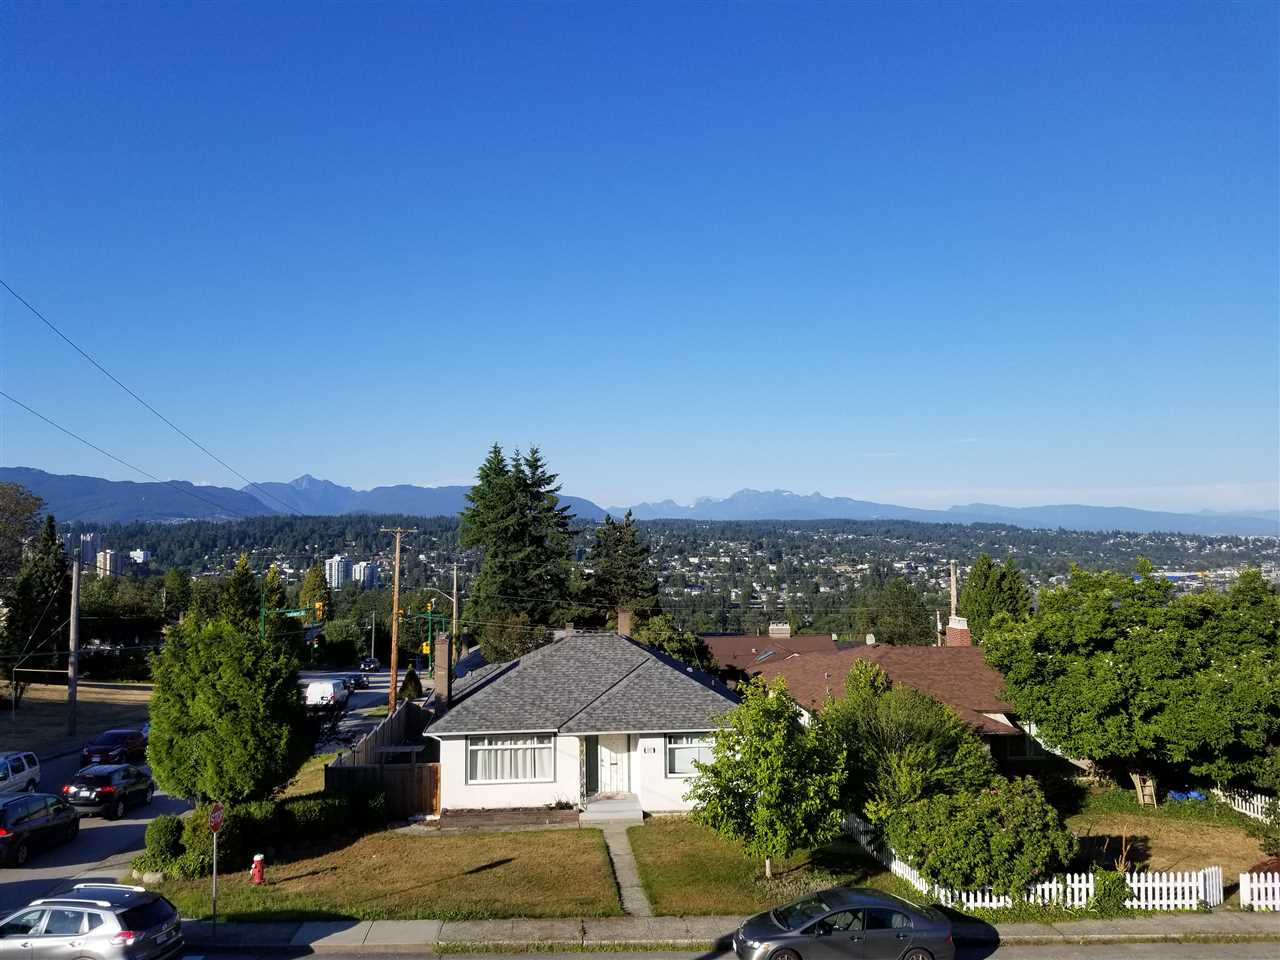 """The Heights"". Beautiful North East Views, Mountain and Fraser River Views and Enjoy Mount Baker on a clear day. Home sits High side of the street. 2 Levels, 3 Bedrooms, 2 Laundries. Upper Level, Nice Hardwood Floors up with some updates, Kitchen was remodeled 2013. Some Double Glazed Windows. Roof was done in 2014. The Hot Water tank 2015, Furnace approx 2013. Double Carport off Rear Lane. Across from park, great for kids play. Walking distance to the Crest Plaza Shopping and Bus Transit, Close to Canada Games Pool. School Catchments, F W Howay Elementary School, Ecole Glenbrook Middle & New Westminster Secondary, Close to Douglas College and SFUniversity. Perfect Starter Home, or rent out and make a great investment. Close to Lougheed Mall, Korean Hannam Supermarket, Quay and Skytrain."